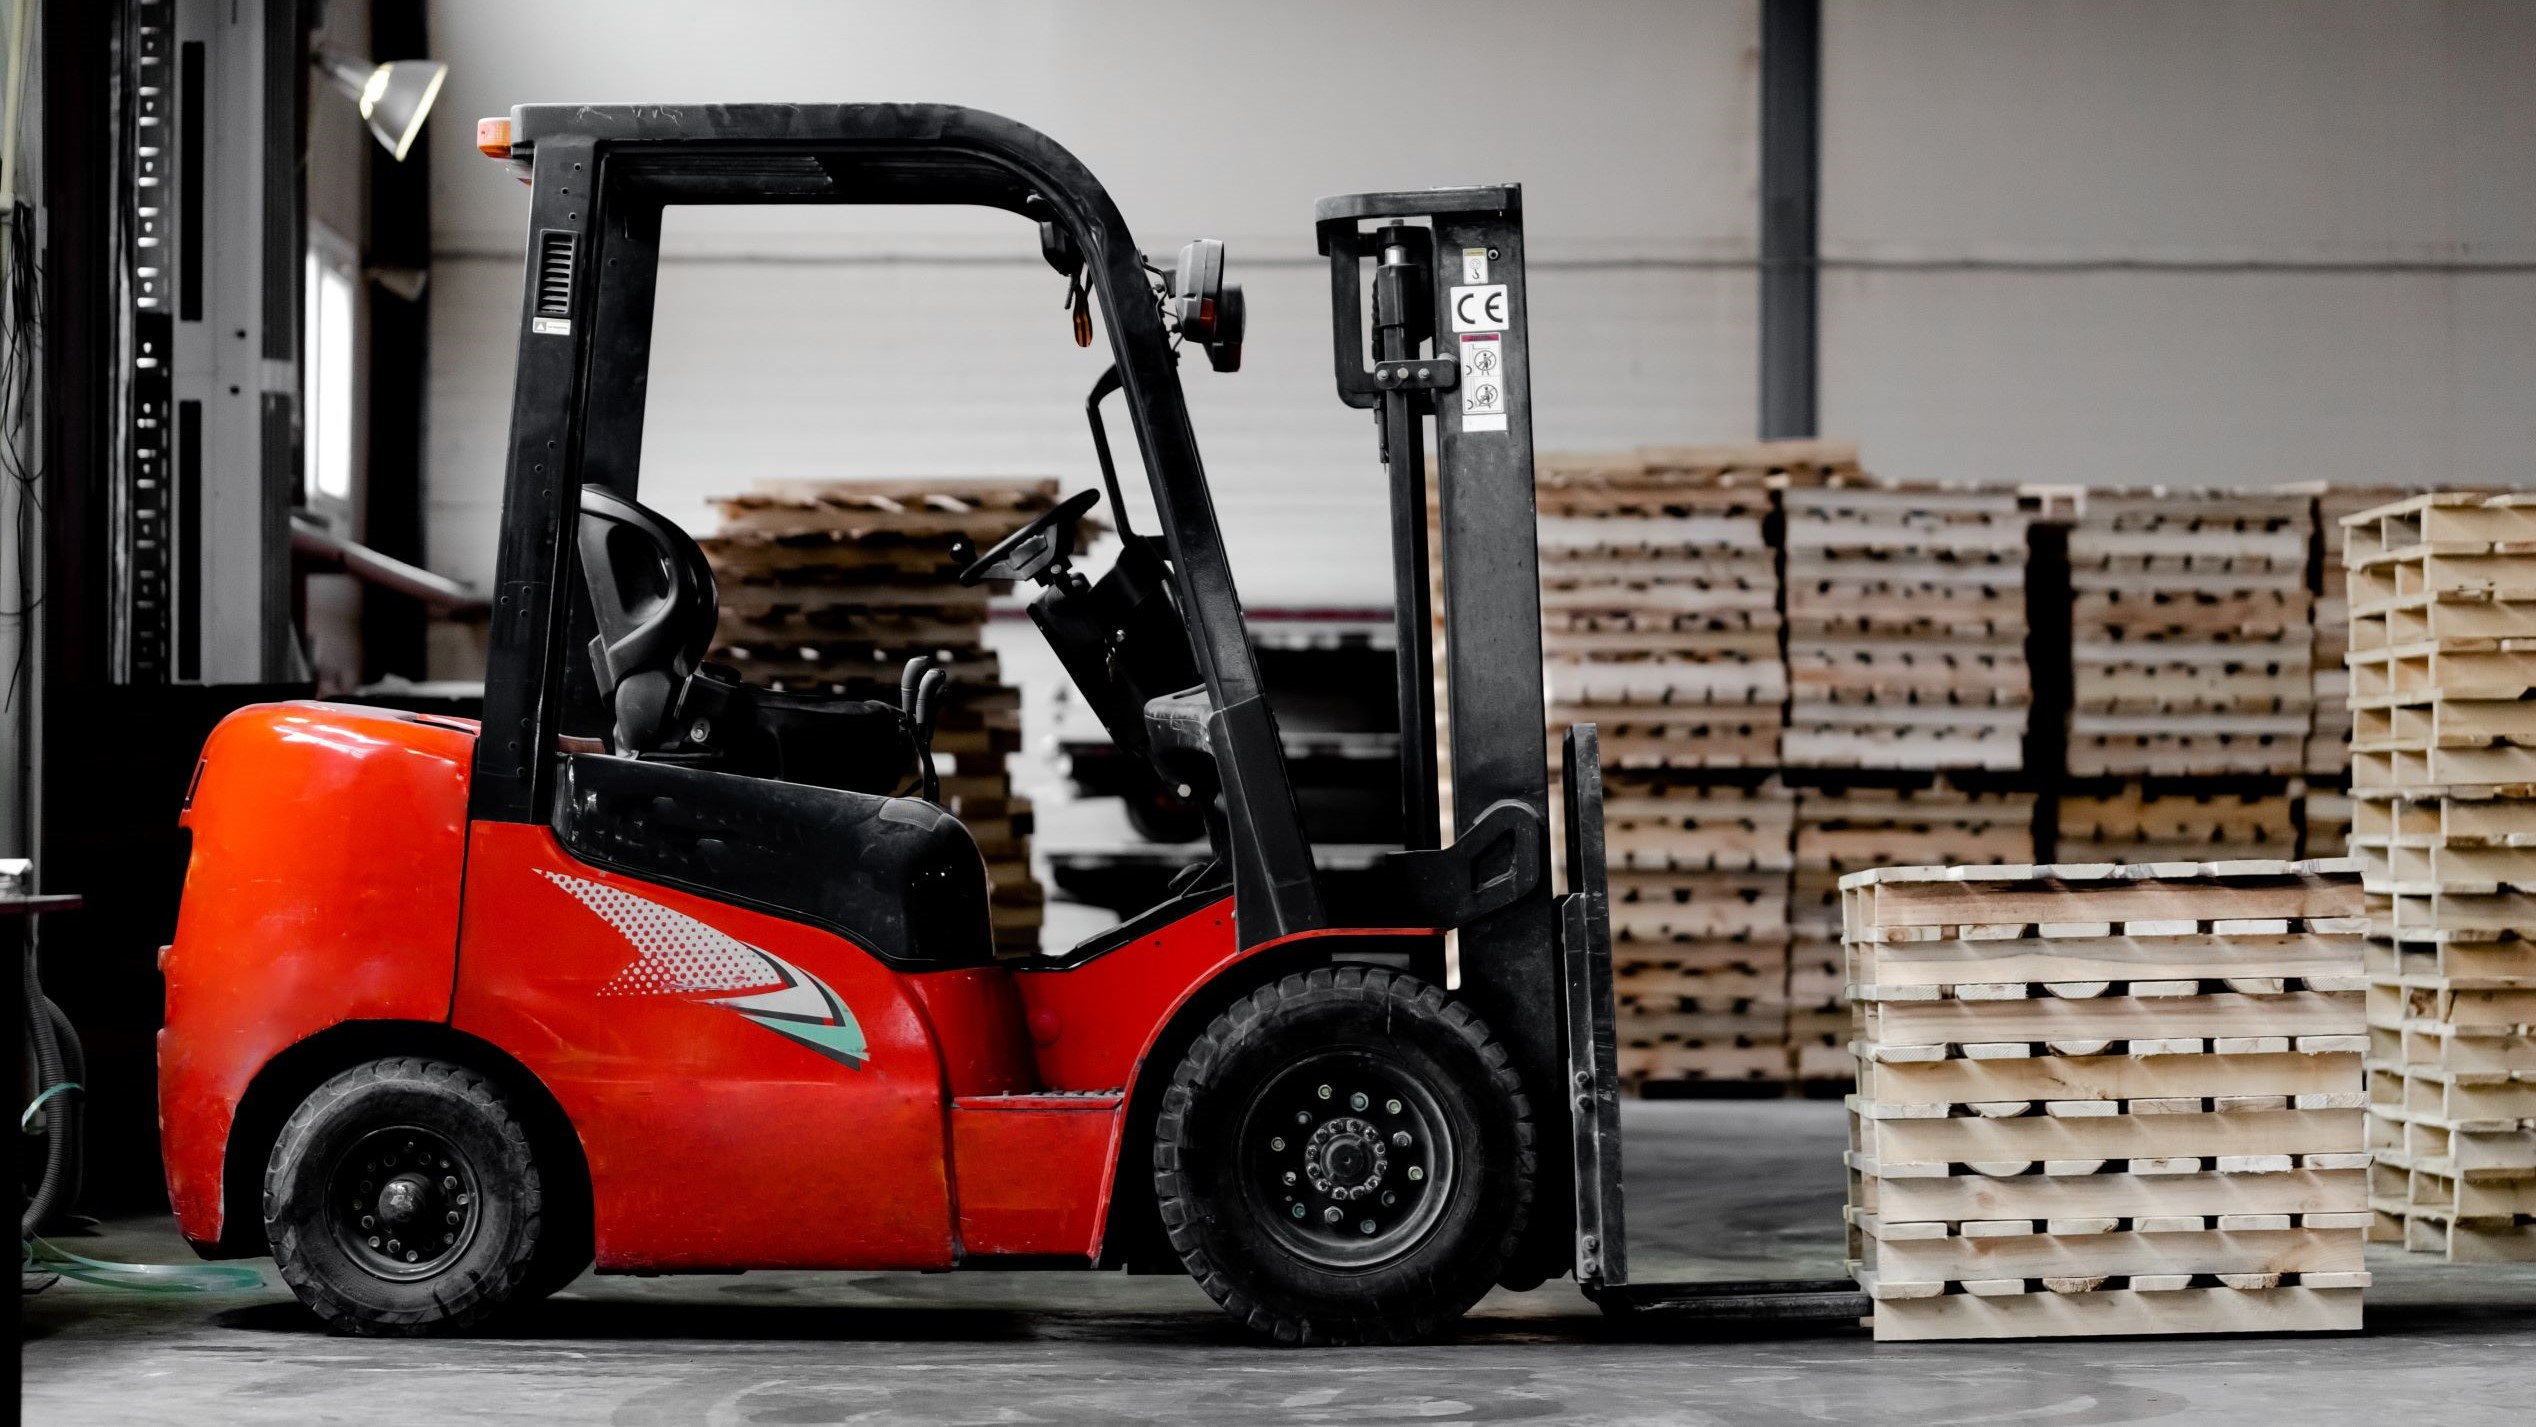 Forklift Prices: Are You Getting the Best Deal?